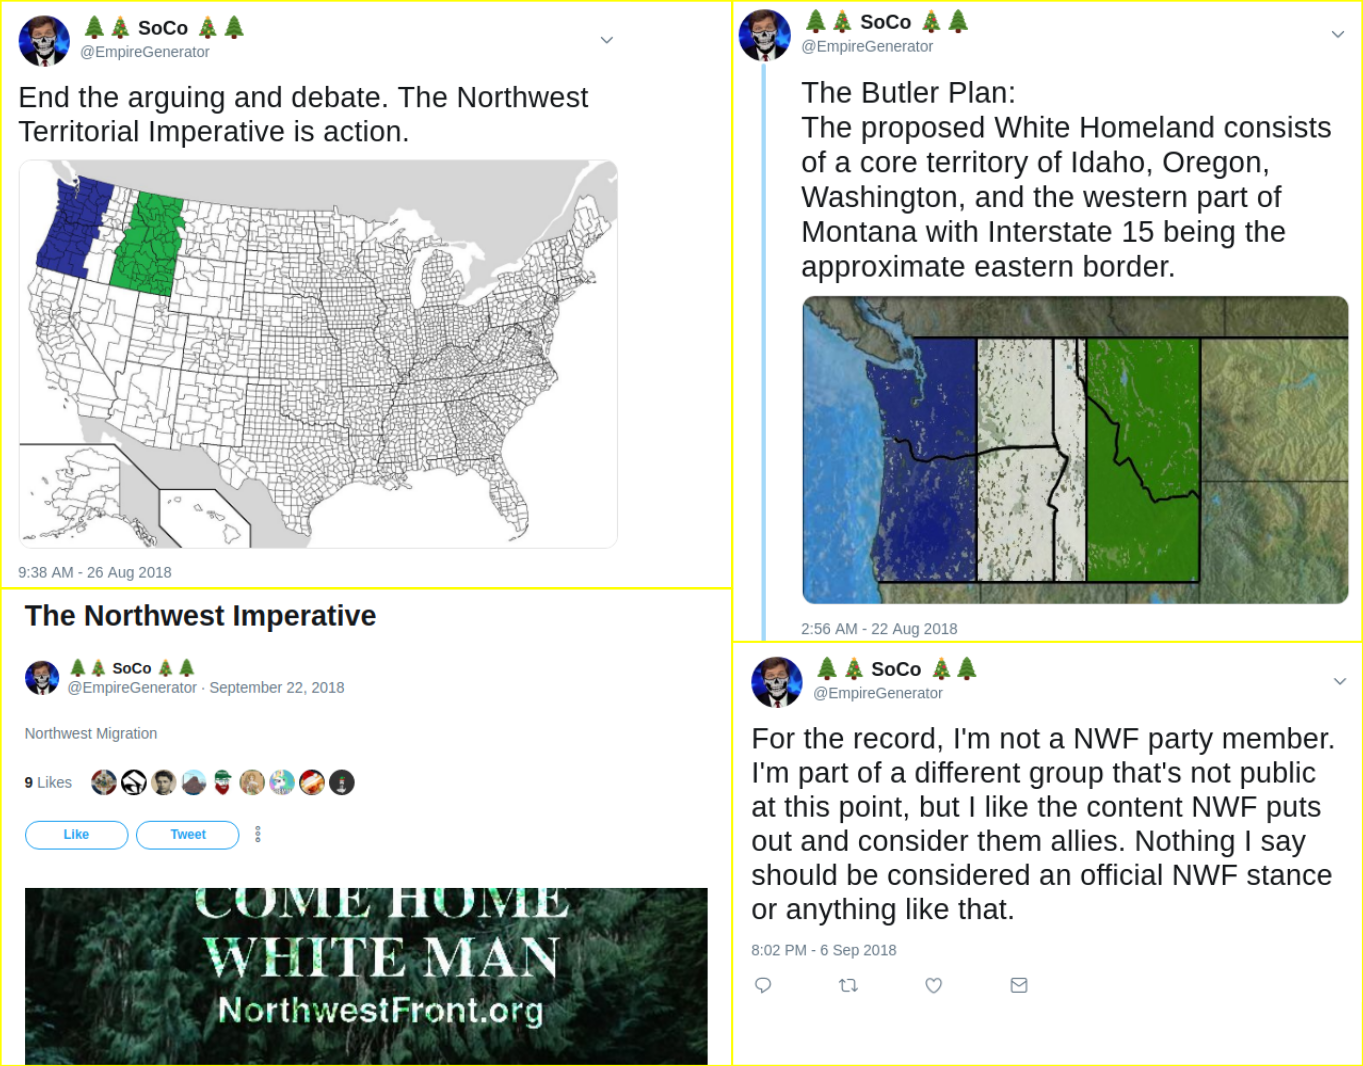 Matt Blais propagandizes for the Northwest Front